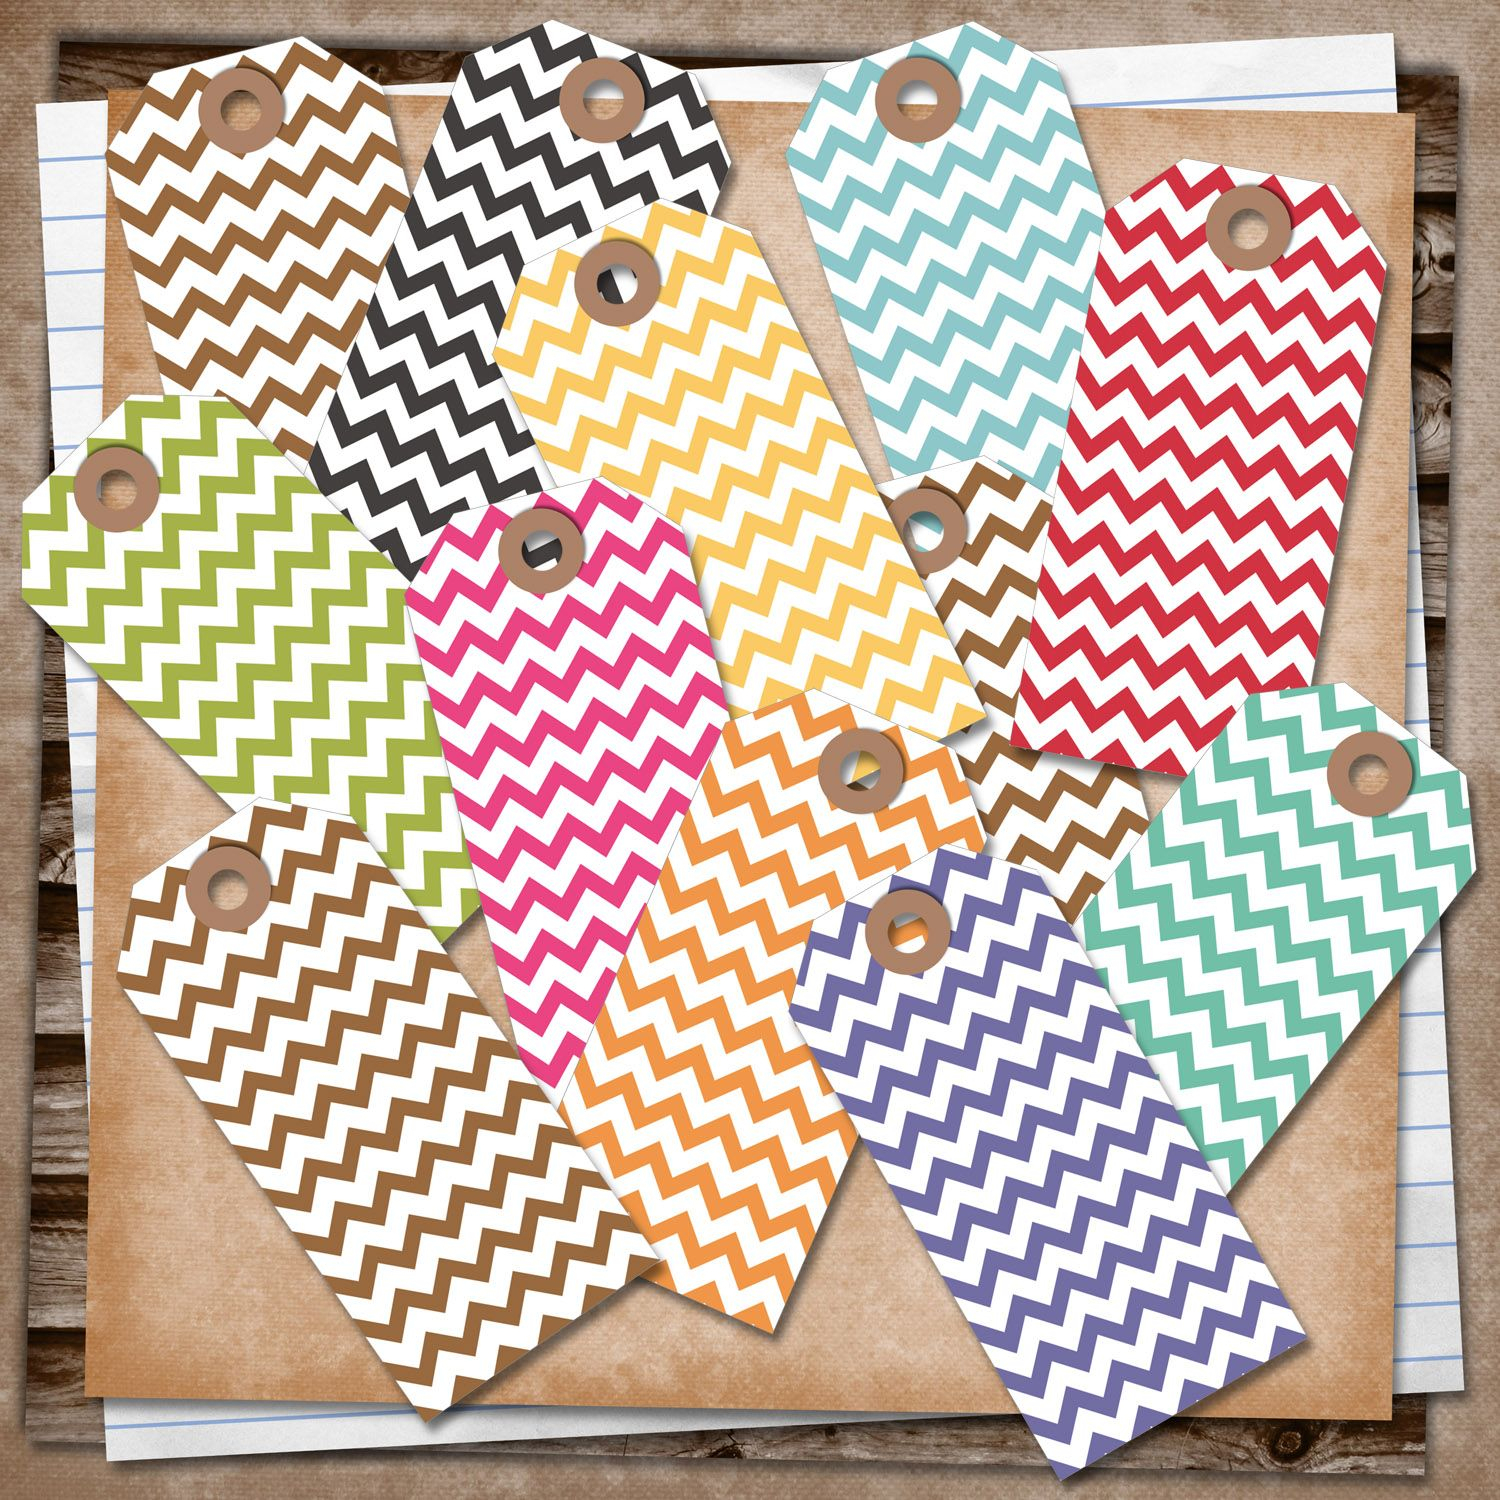 U Printablesrebeccab: Free Printable - Chevron Tags | Printables - Free Printable Chevron Labels